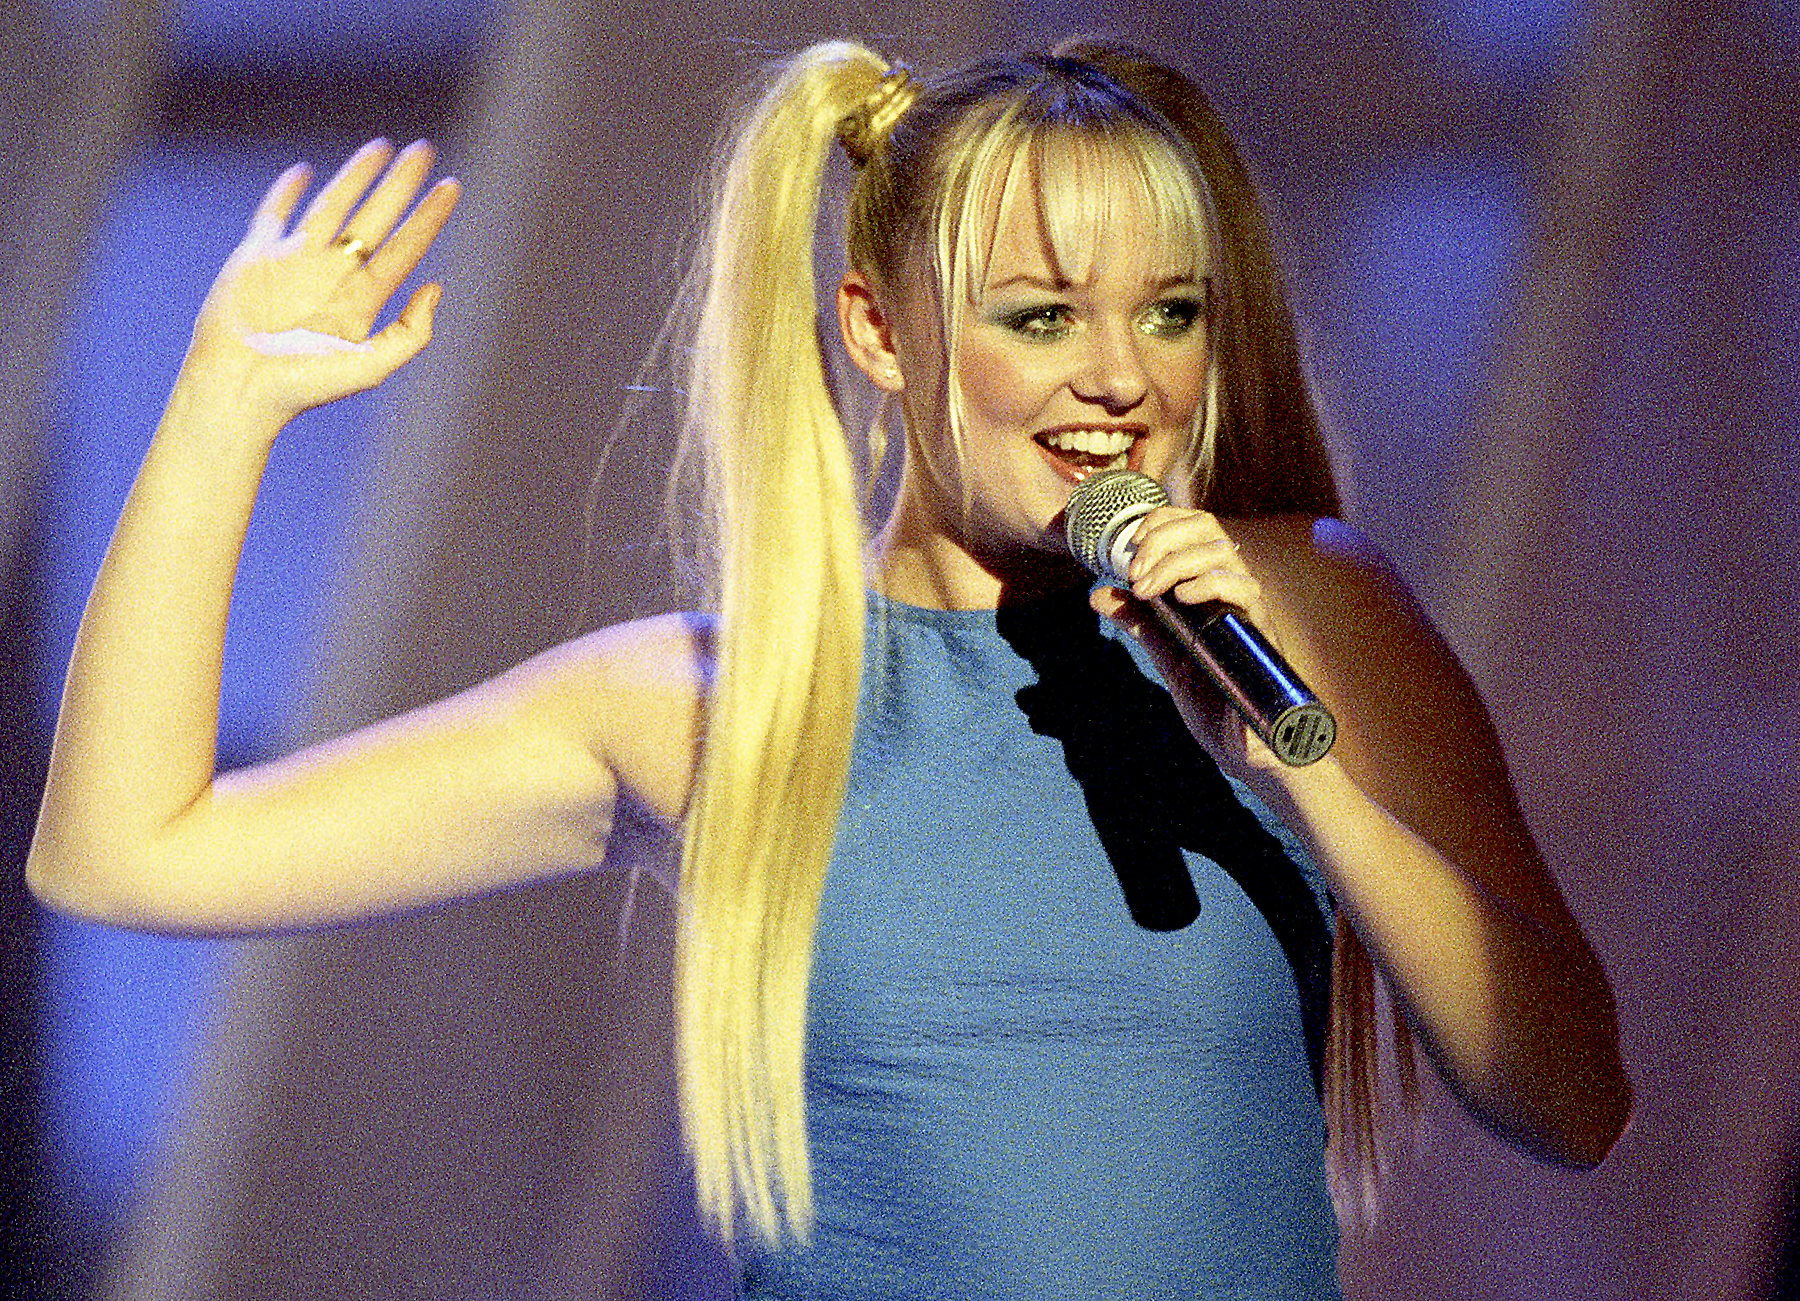 Emma Bunton performing live on stage in 1997.